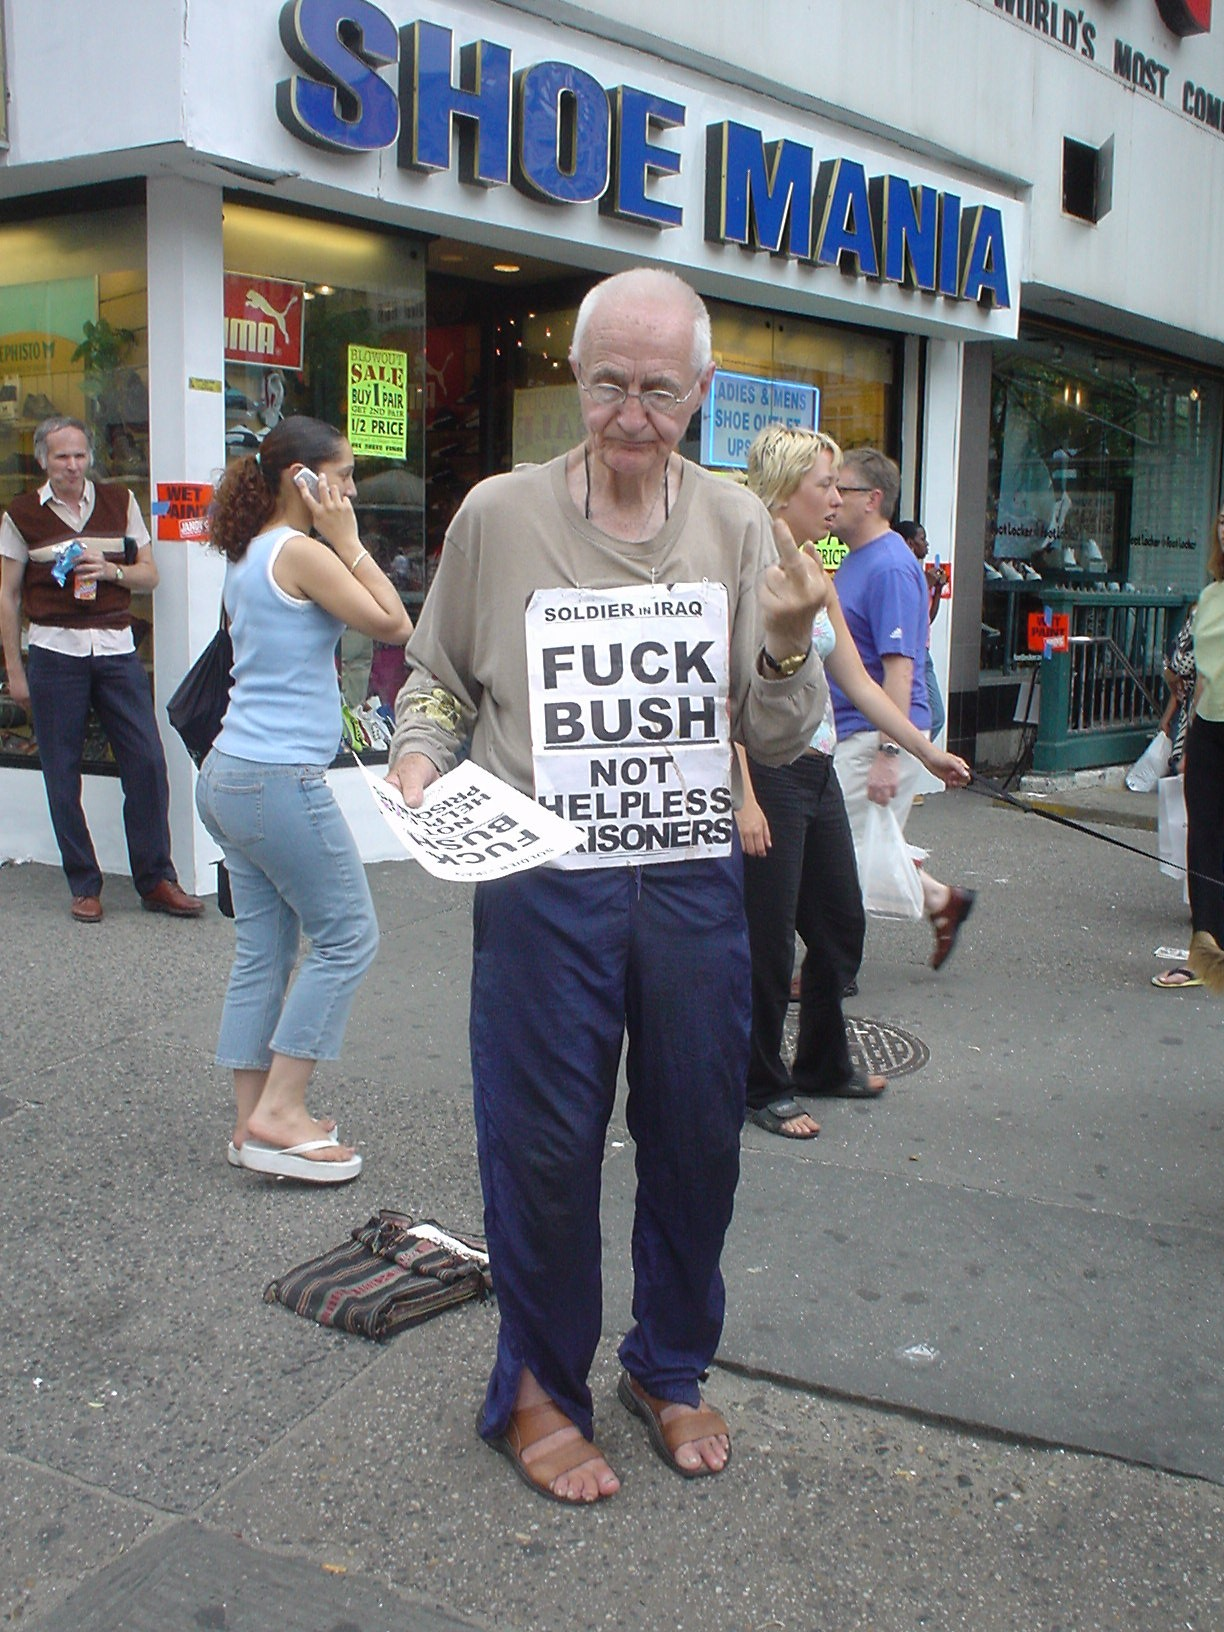 Old Man with FUCK BUSH sign gives the middle finger